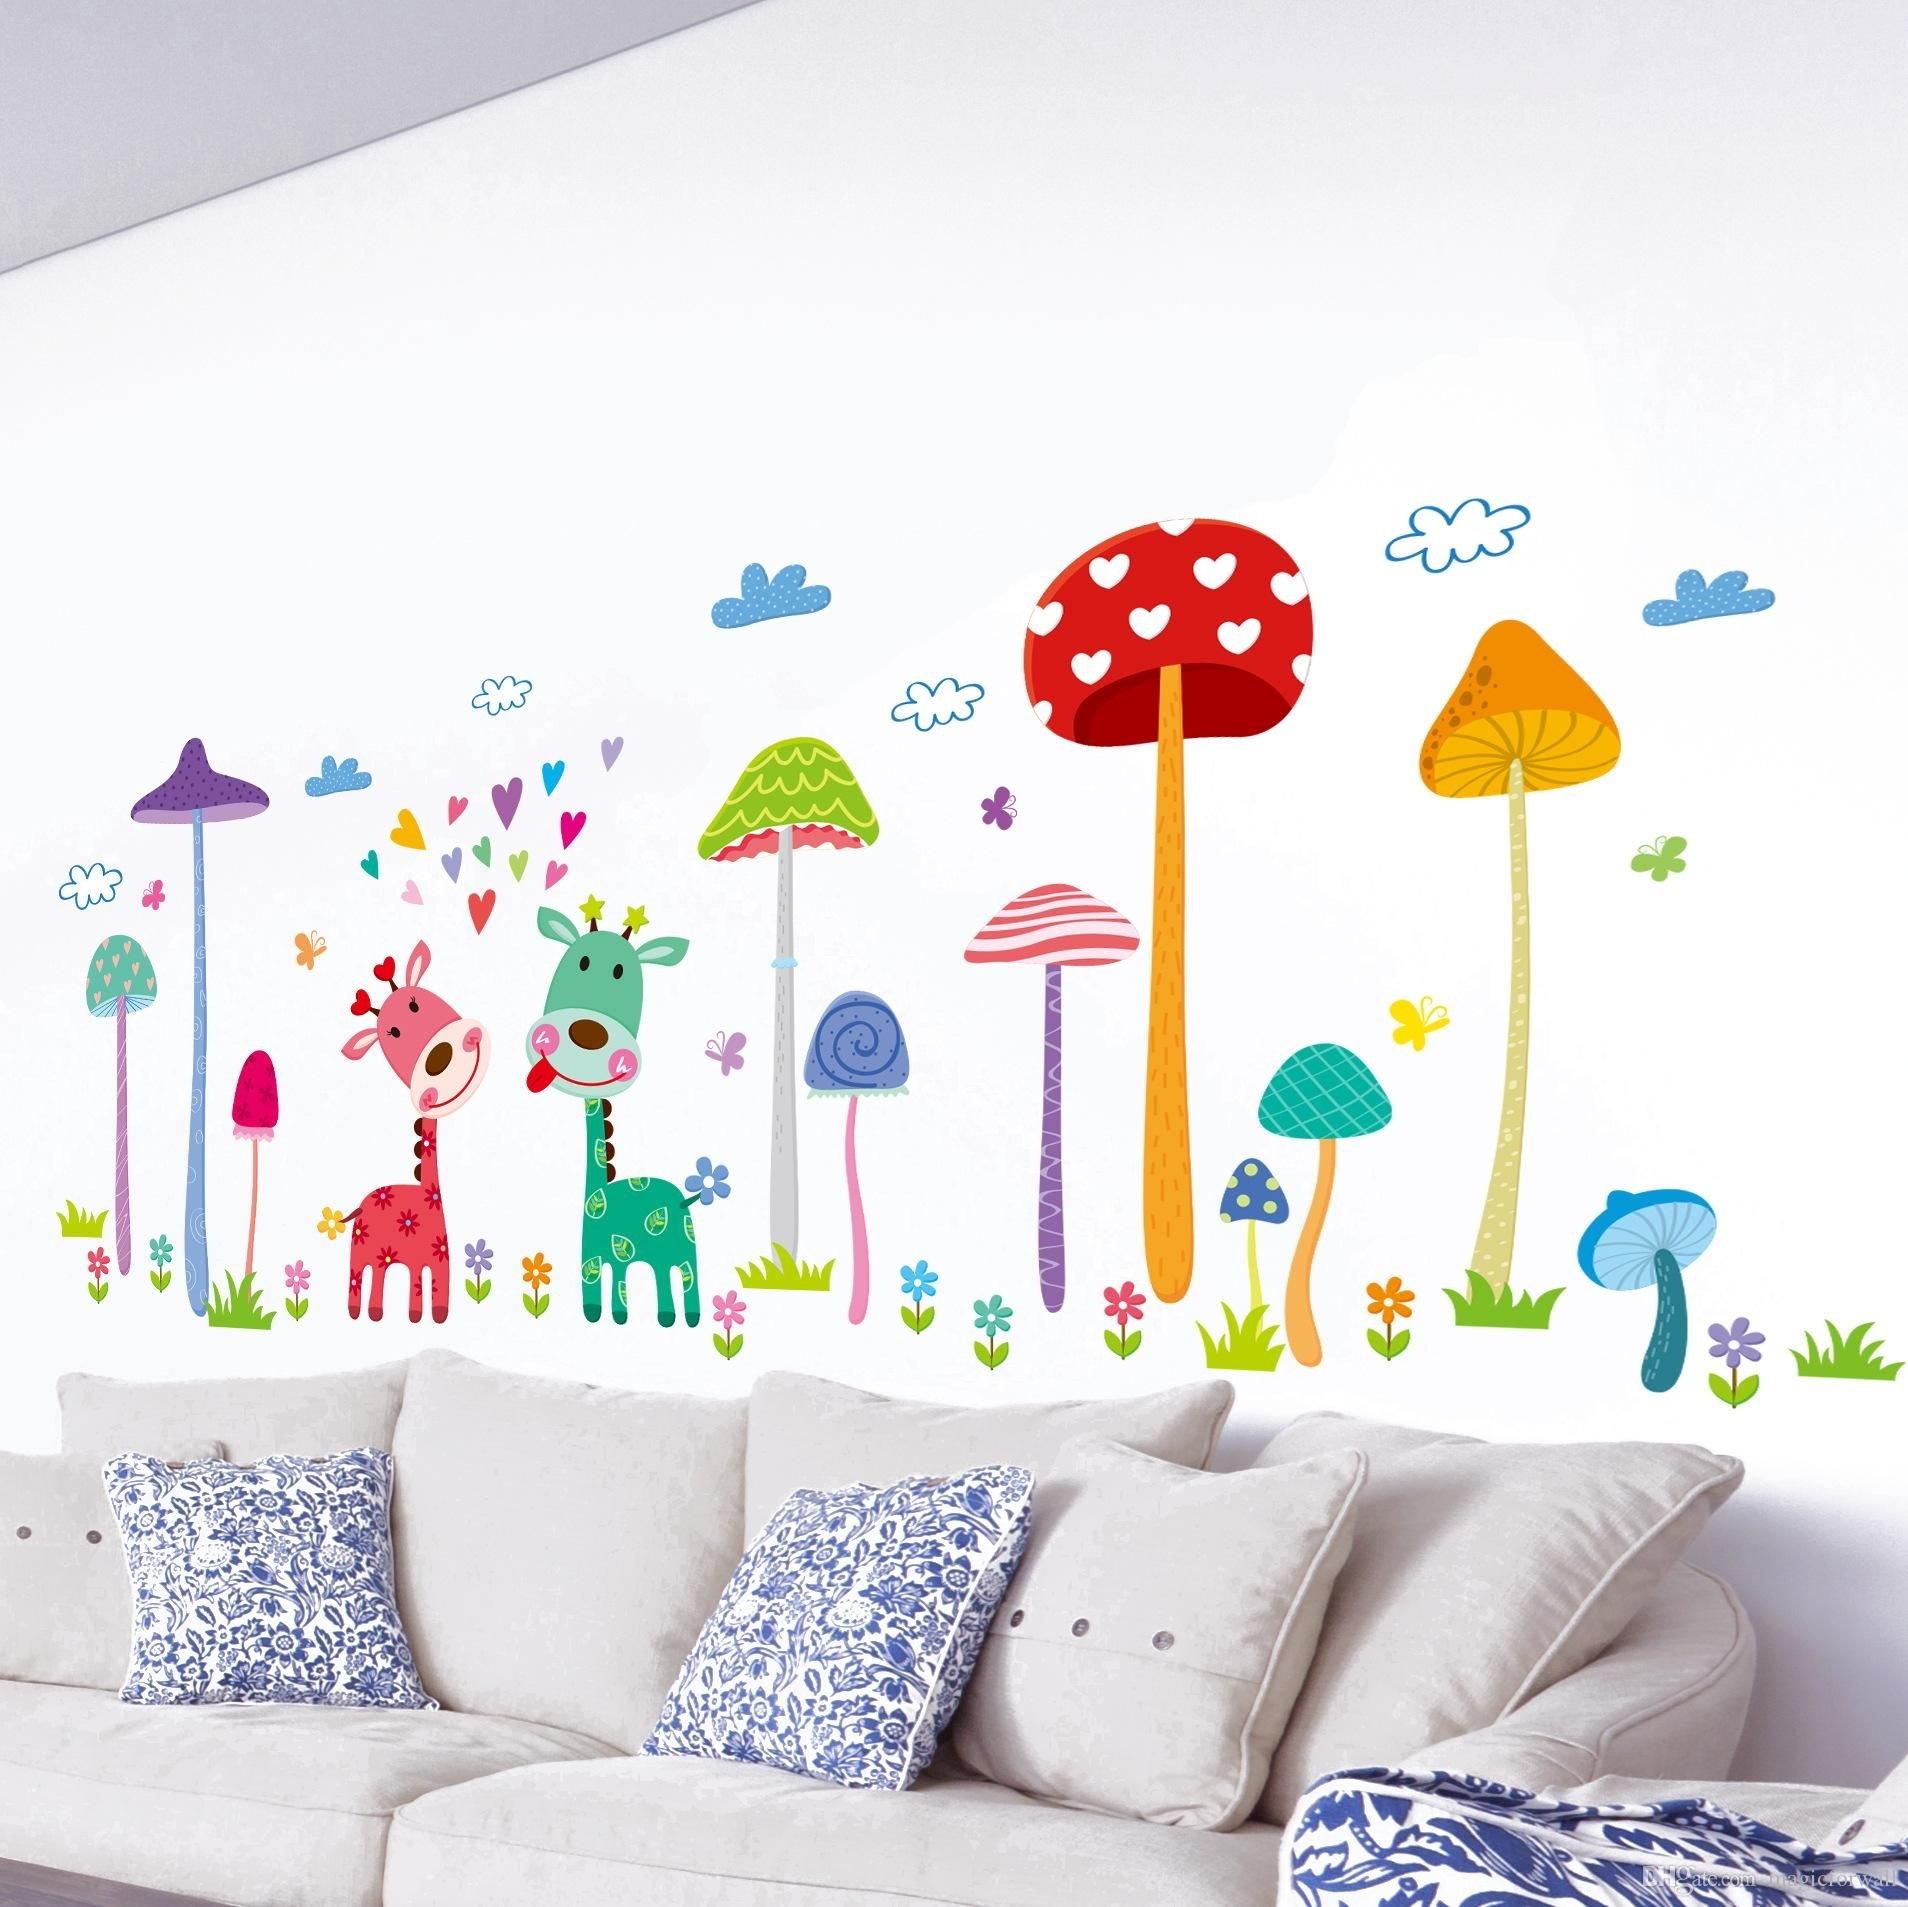 Forest Mushroom Deer Animals Home Wall Art Mural Decor Kids Babies With Regard To Most Up To Date Home Wall Art (View 7 of 20)